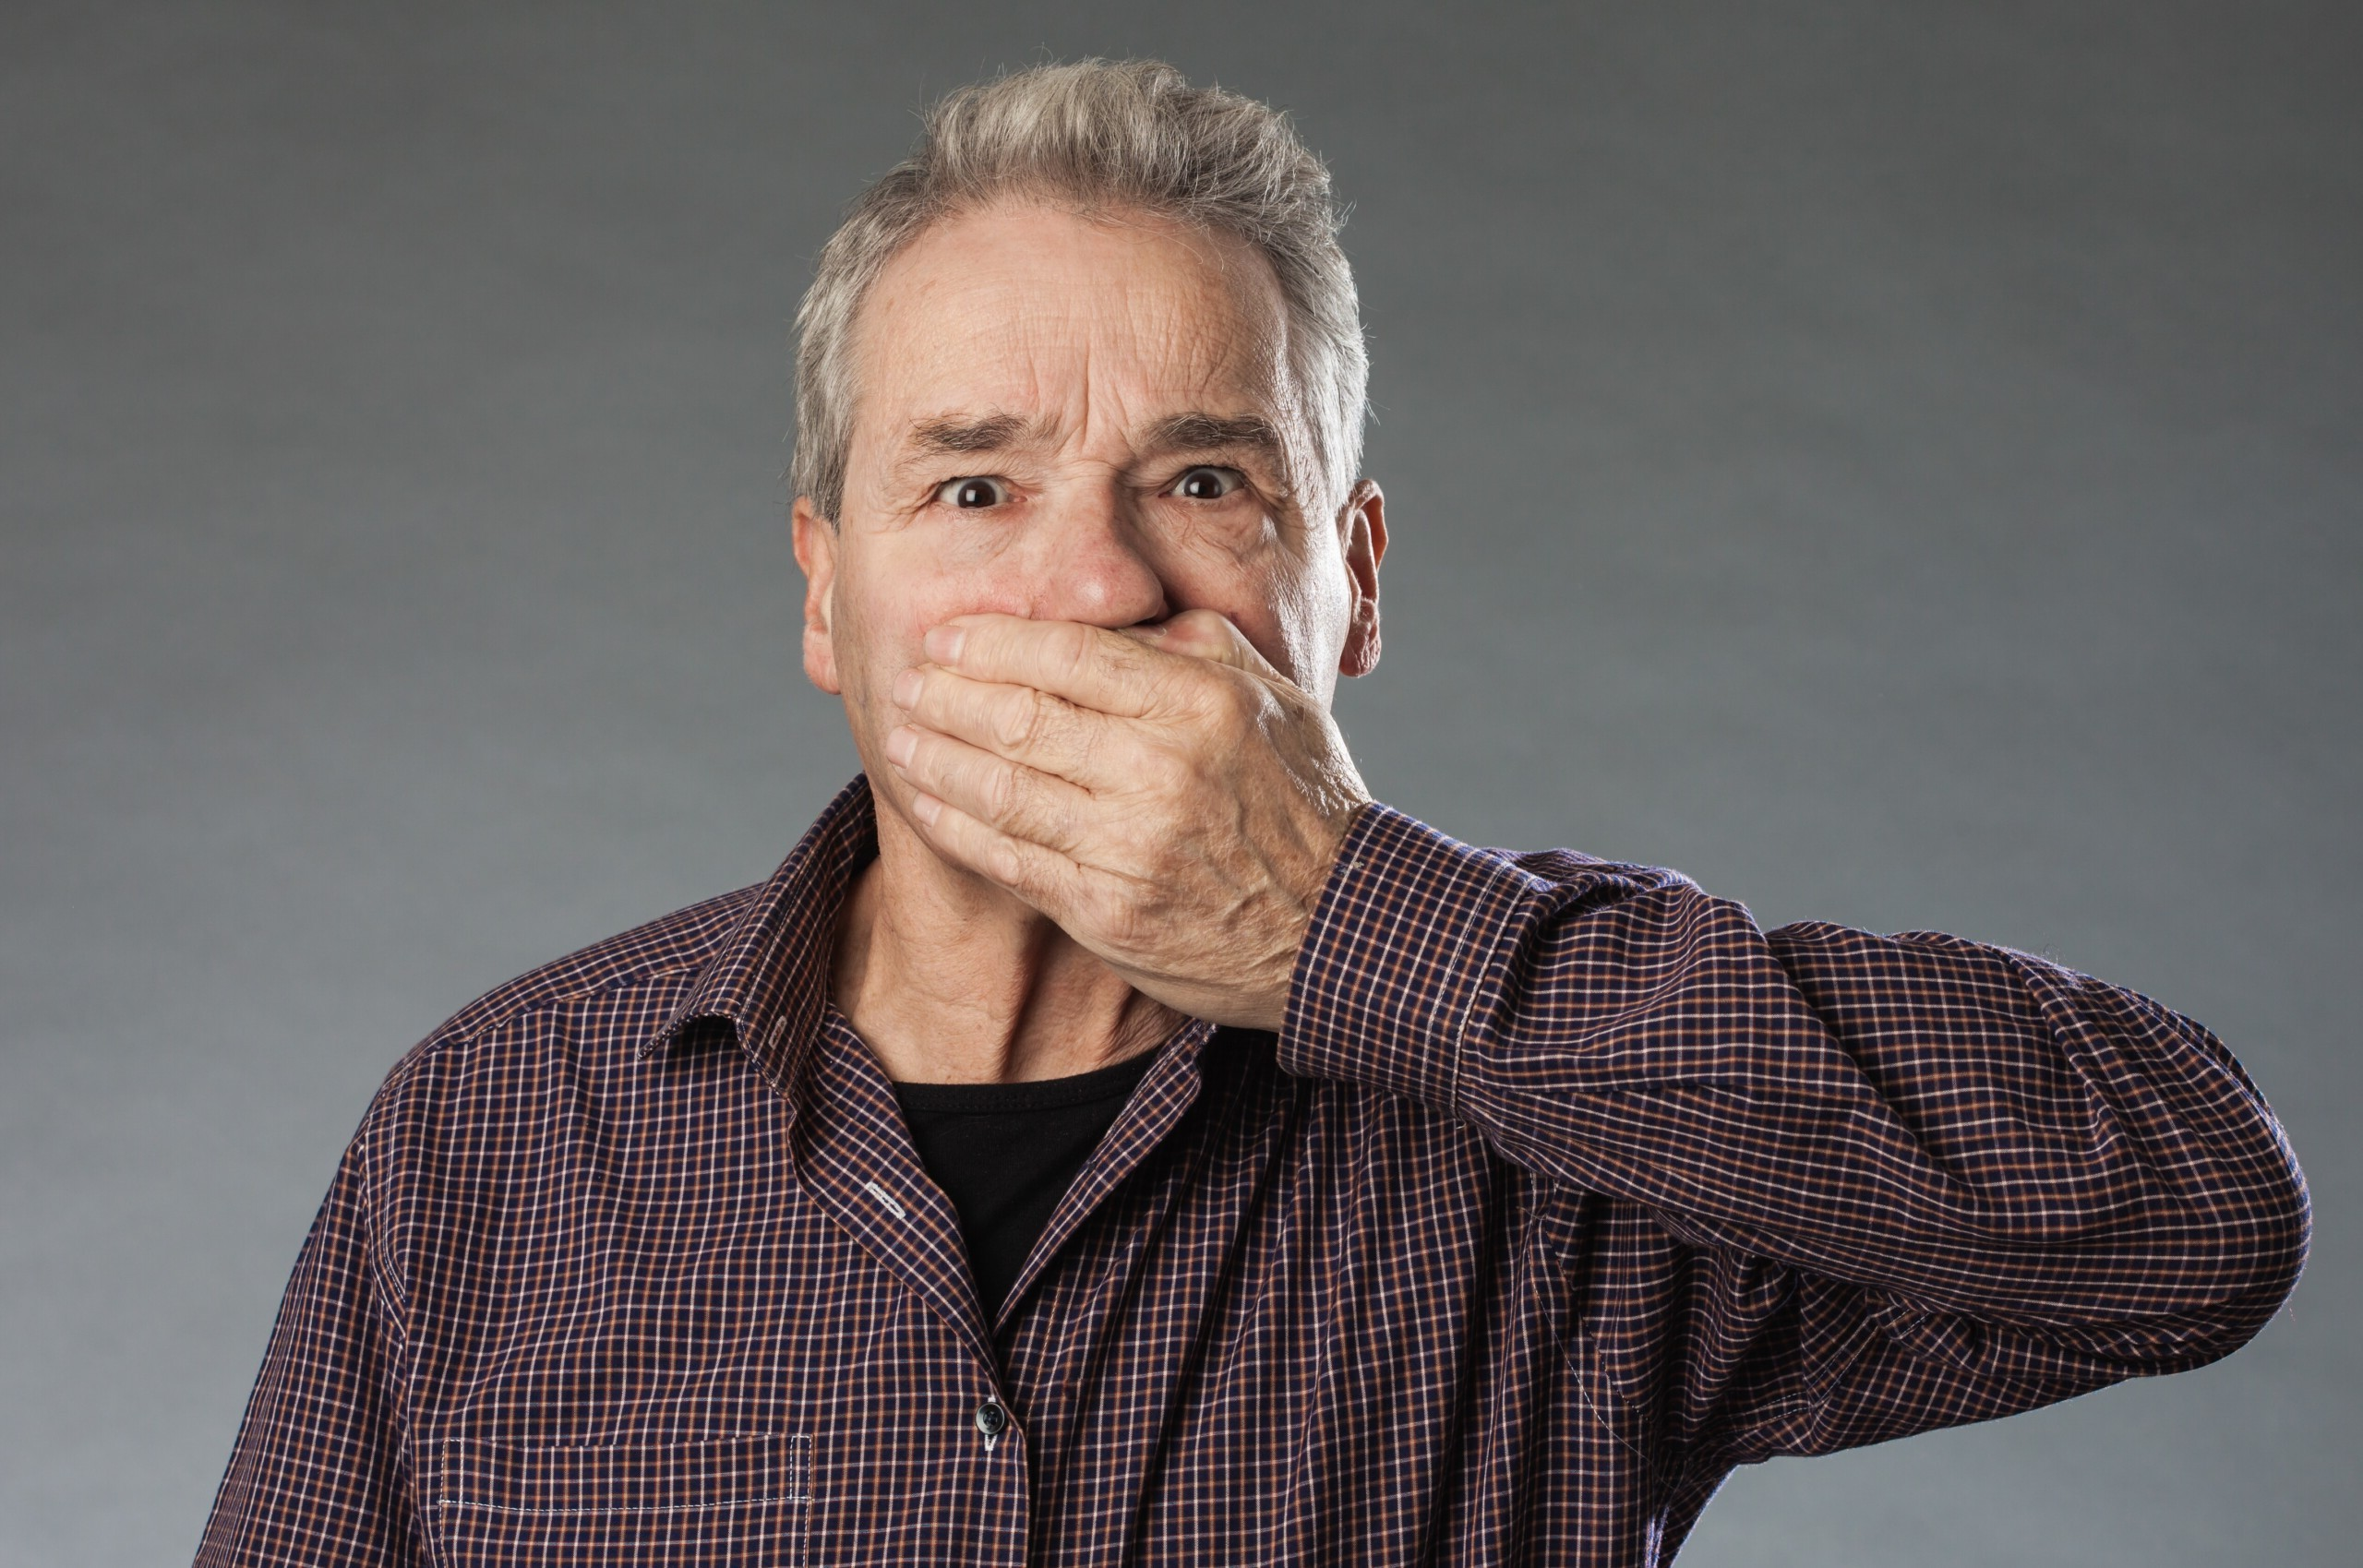 Constant Burping After Eating: Causes, Solutions